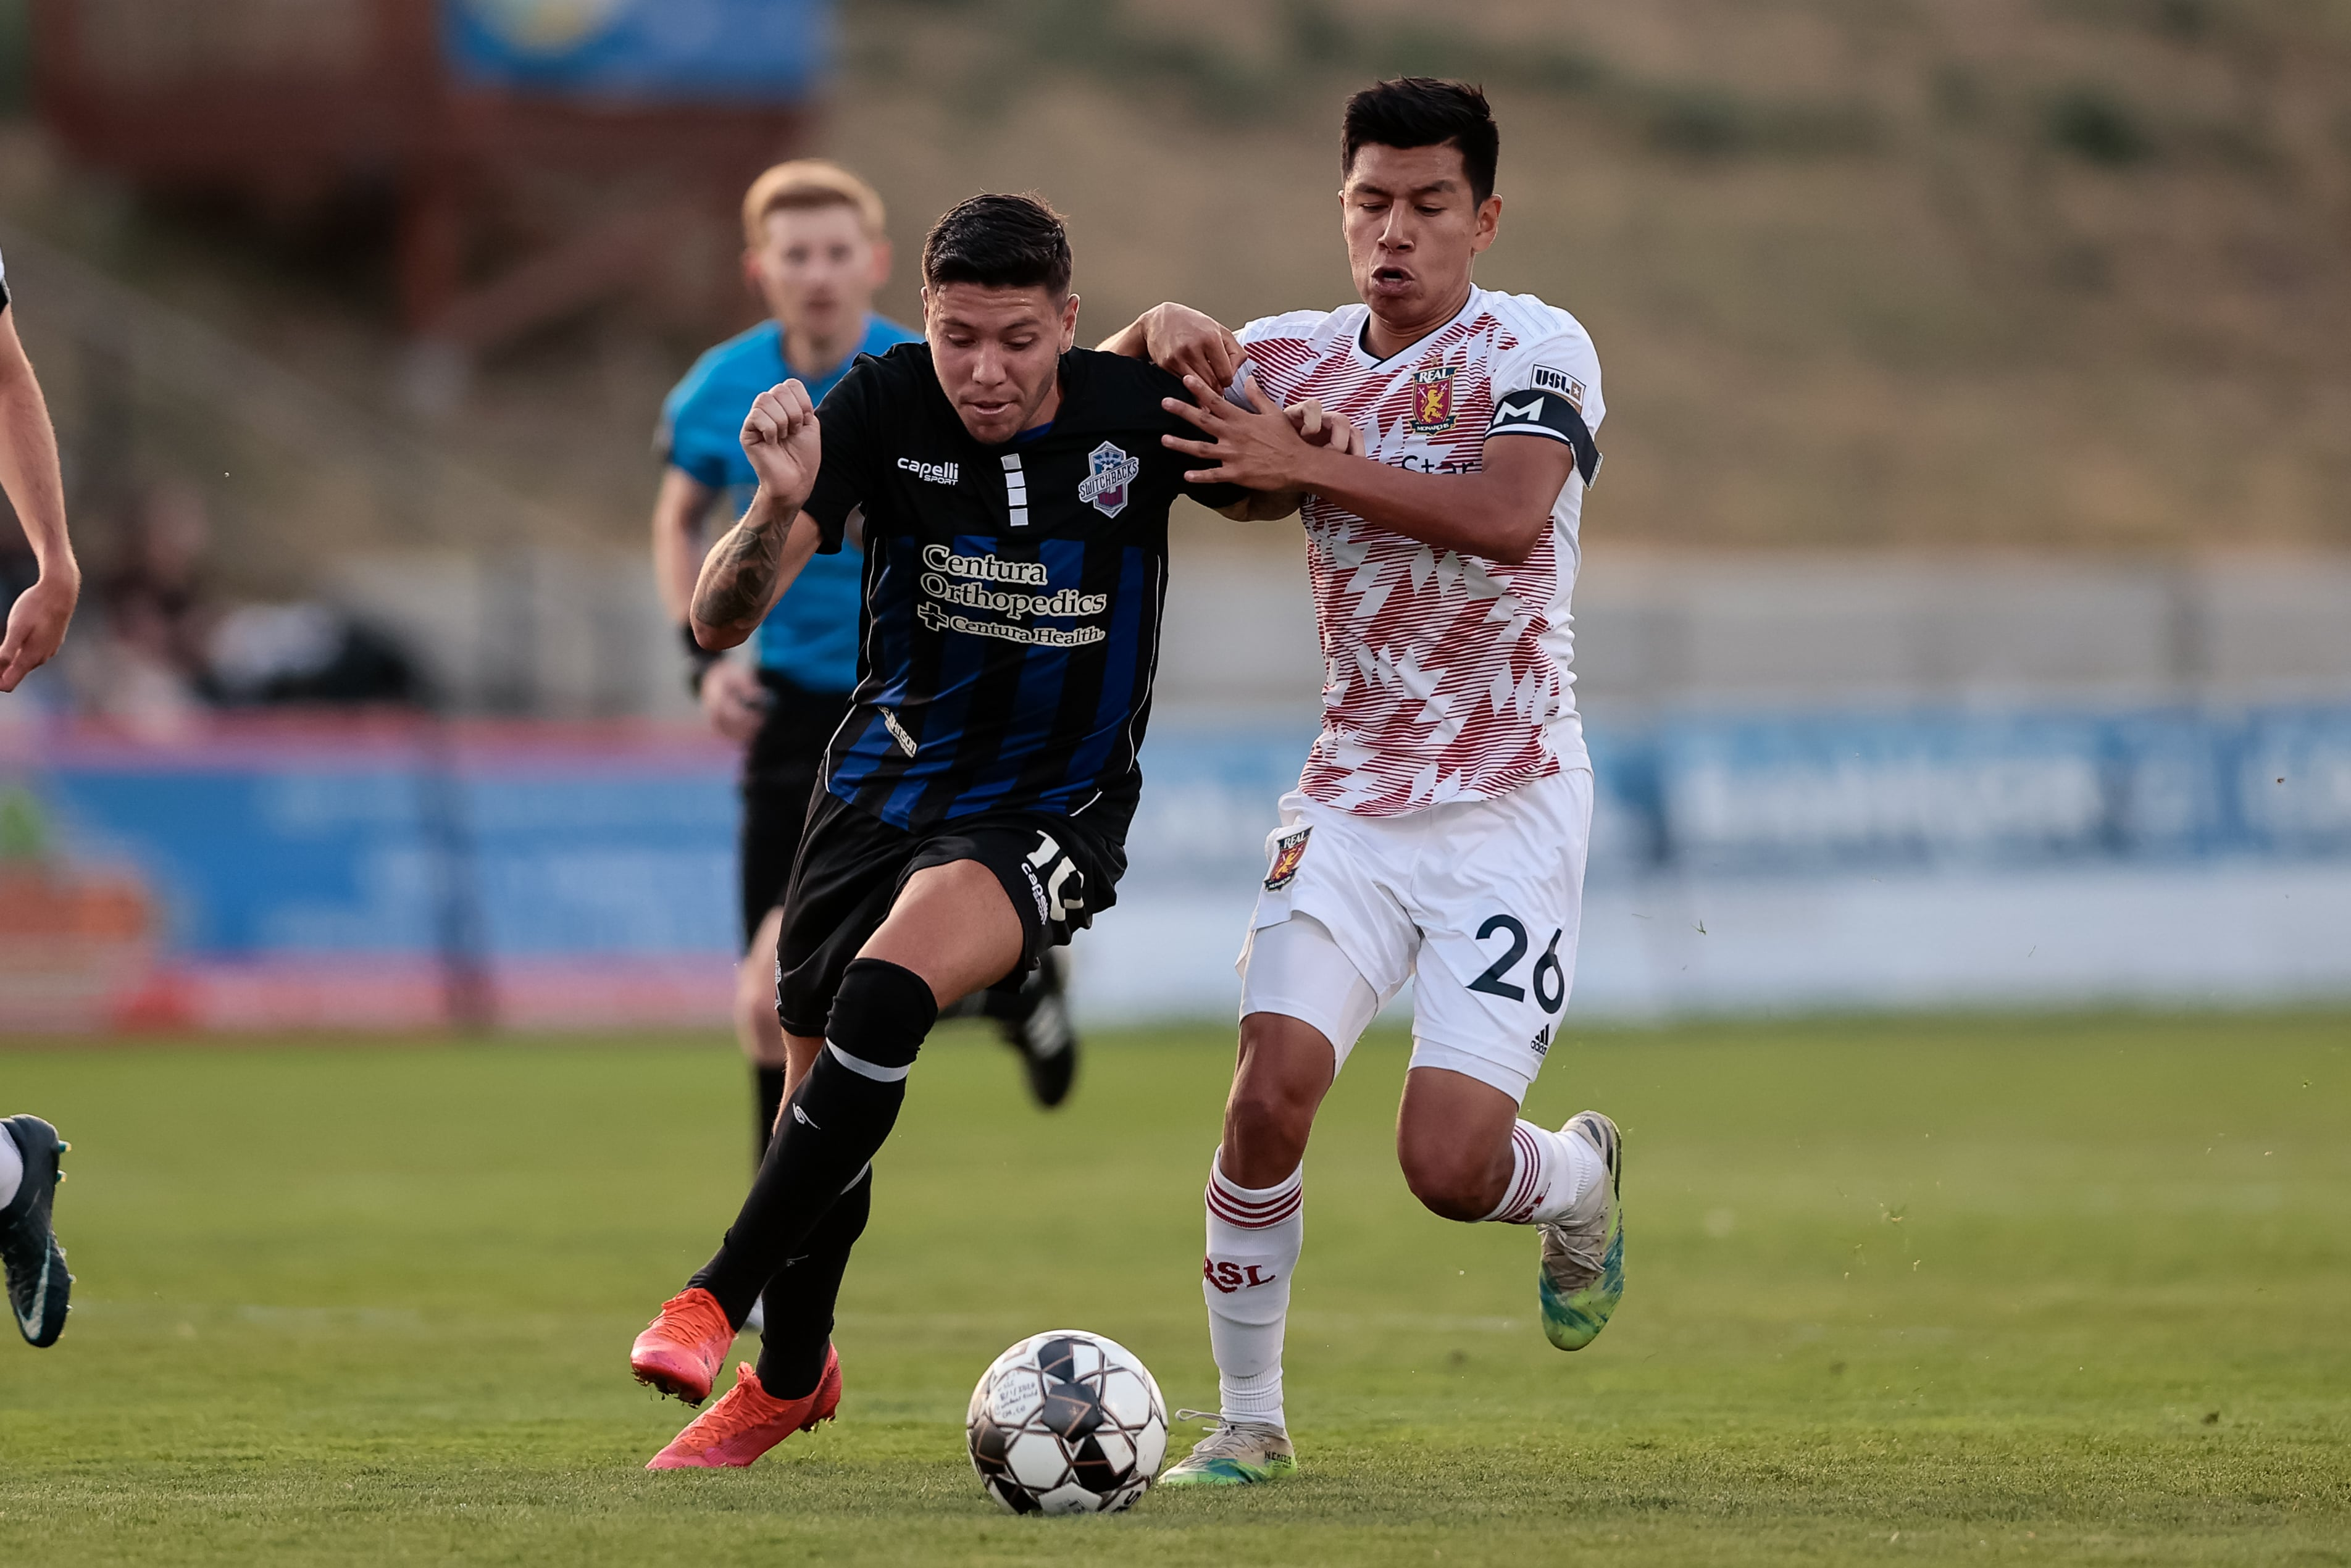 colorado springs switchbacks mirror consistent pressure against salt lake city oursports central colorado springs switchbacks mirror